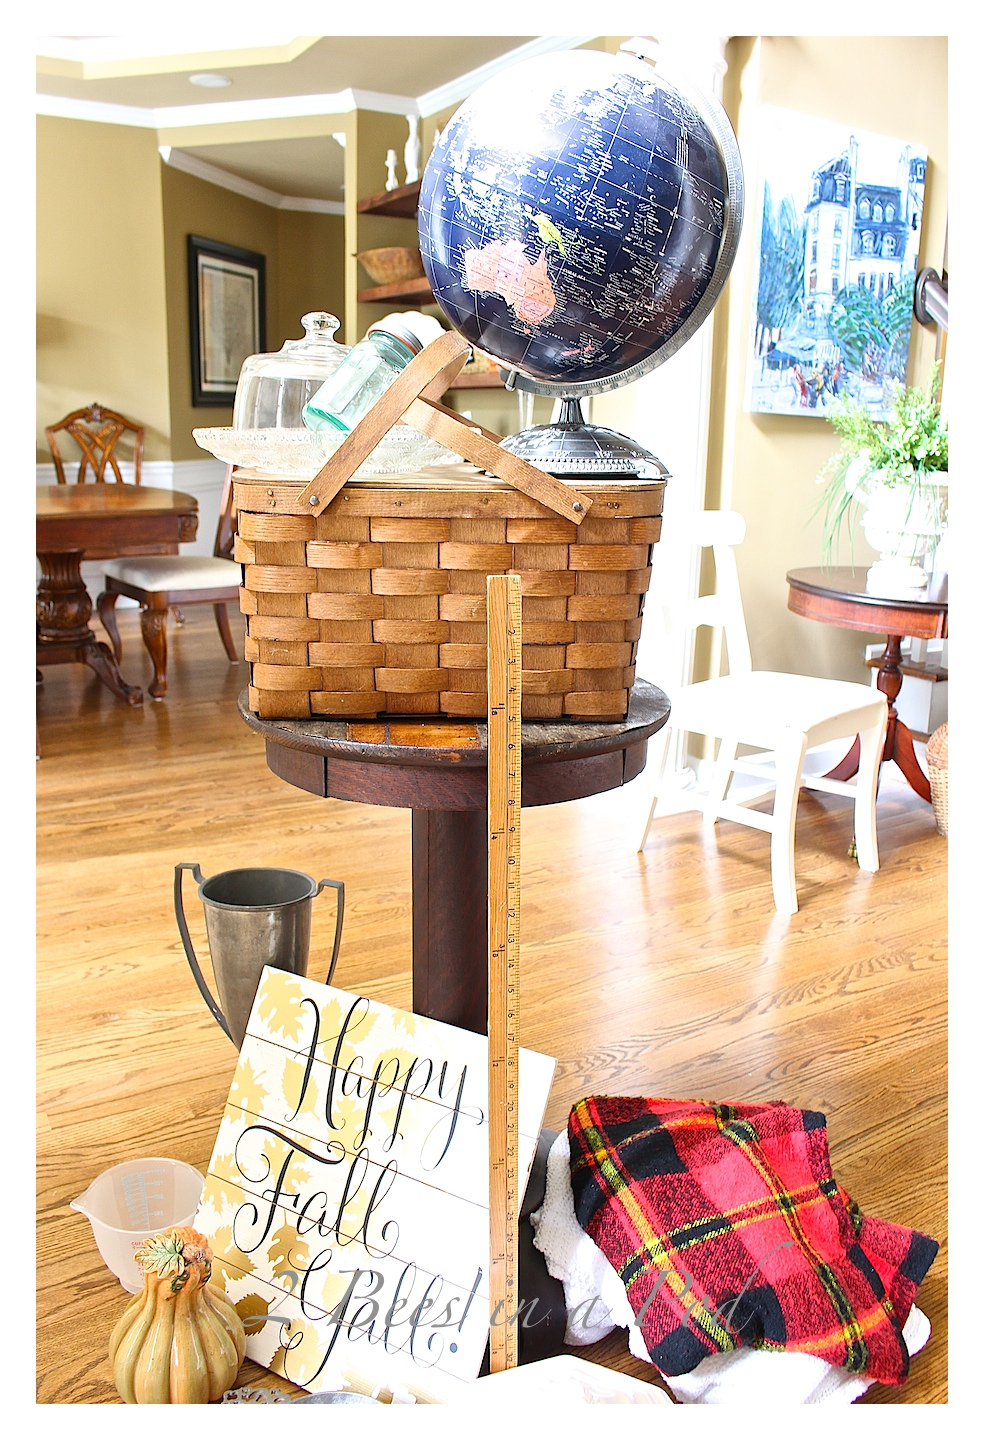 Estate Sale Finds and Deals. Estate Sales don't have to be expensive. Great deals can be had on furniture, collectibles and household items.